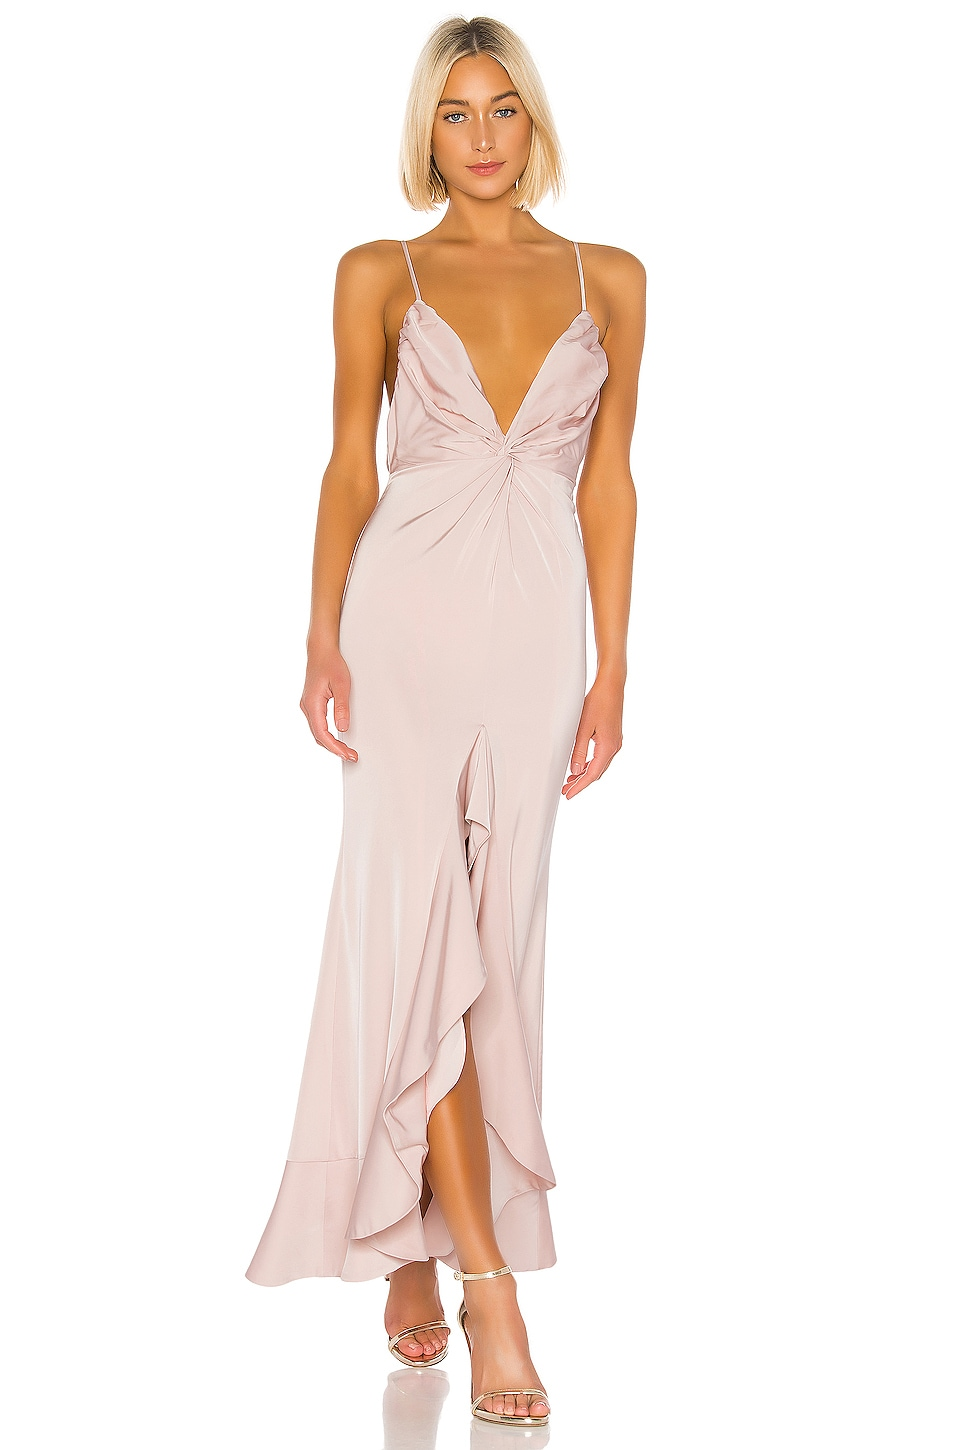 Patricia Gown             Lovers + Friends                                                                                                                                         Sale price:                                                                       CA$ 203.44                                                                                                  Previous price:                                                                       CA$ 356.35 1